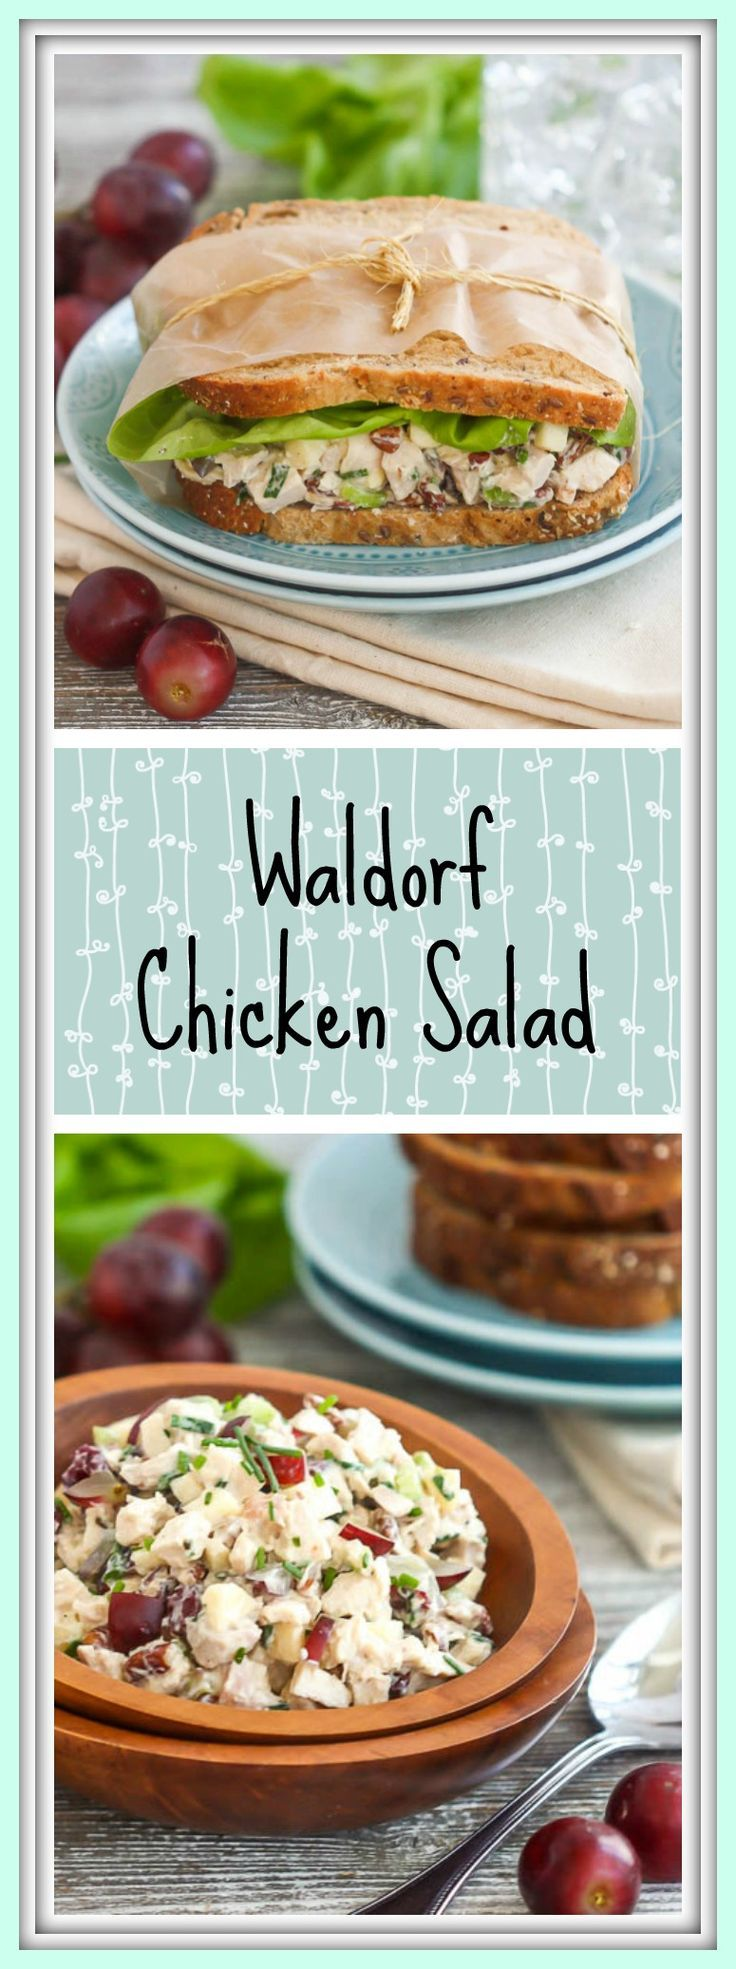 This Waldorf chicken salad combines leftover roast chicken, grapes, apples, celery, pecans and cranberries with a creamy dressing to make one tasty lunch.